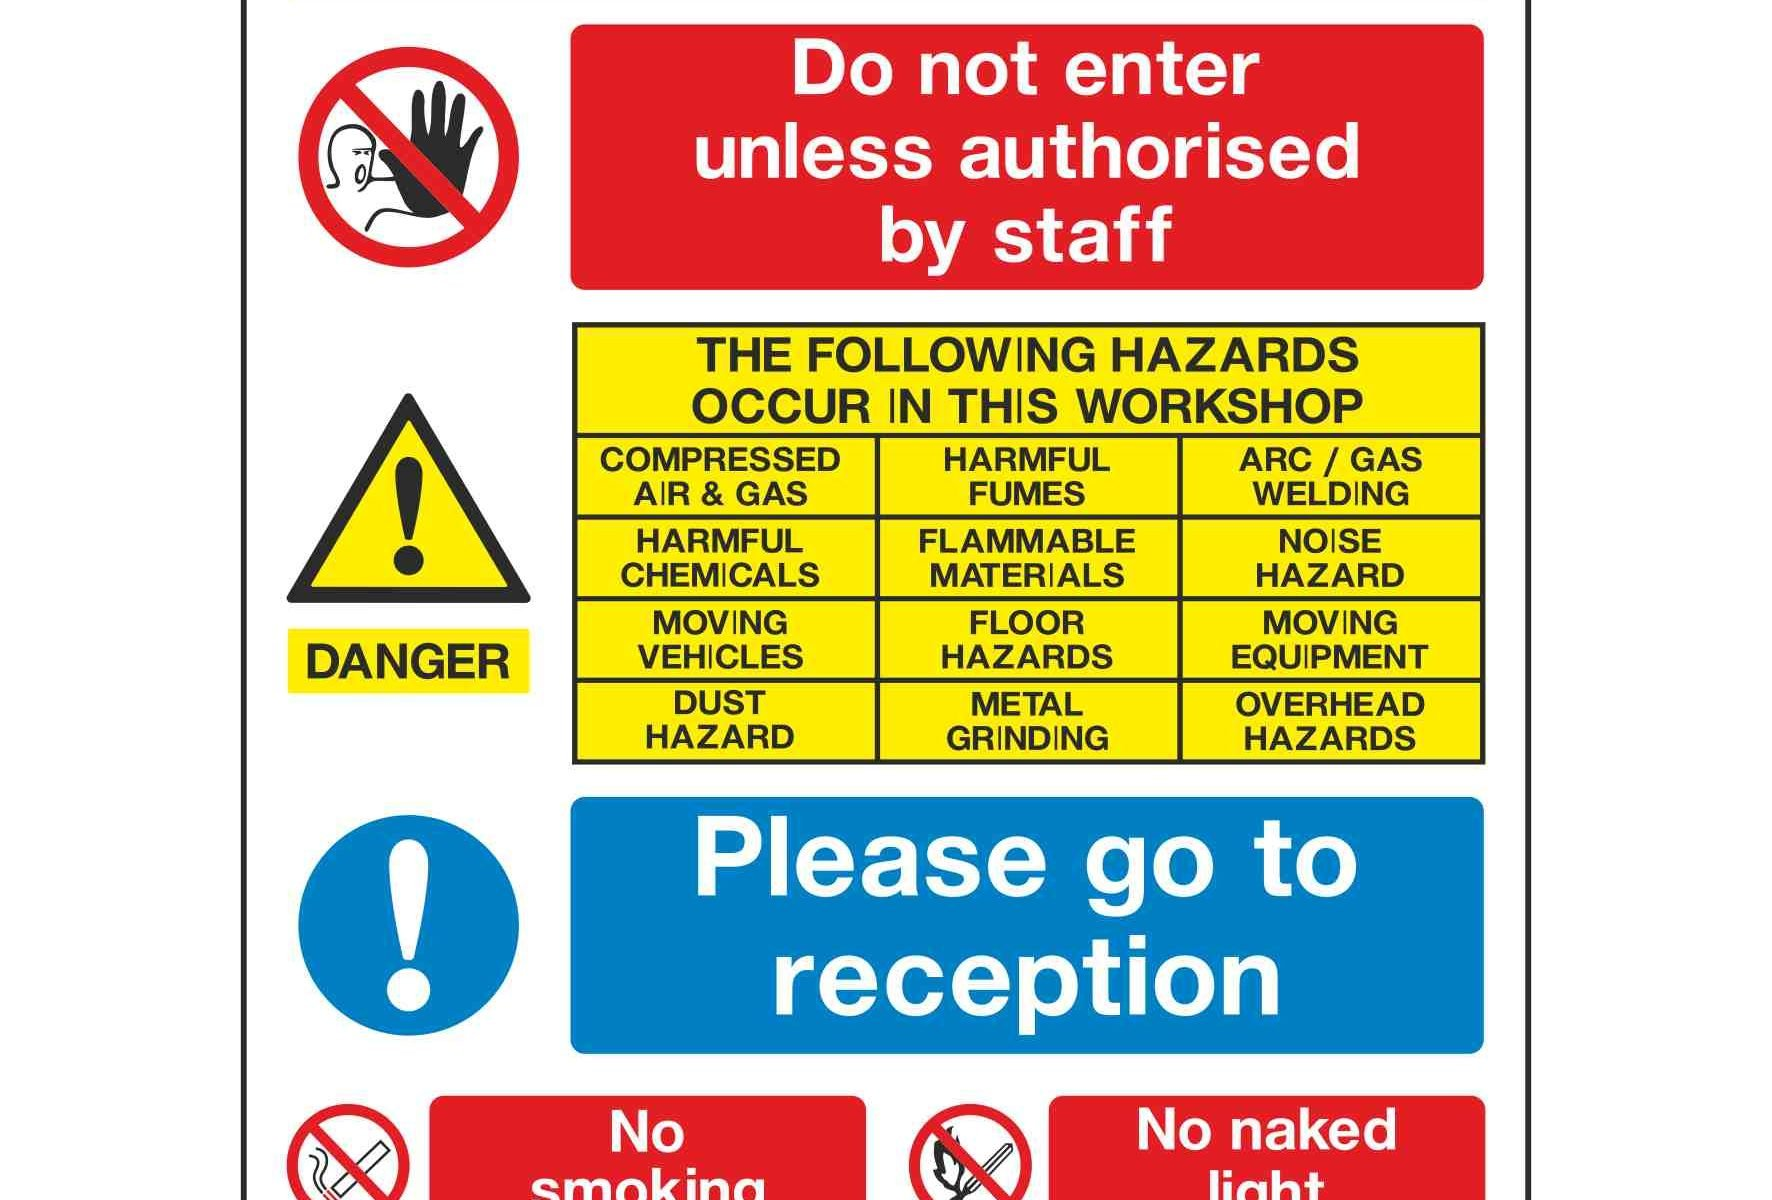 ATTENTION ALL VISITORS! Do not enter unless authorised by staff THE FOLLOWING HAZARDS OCCUR IN THIS WORKSHOP